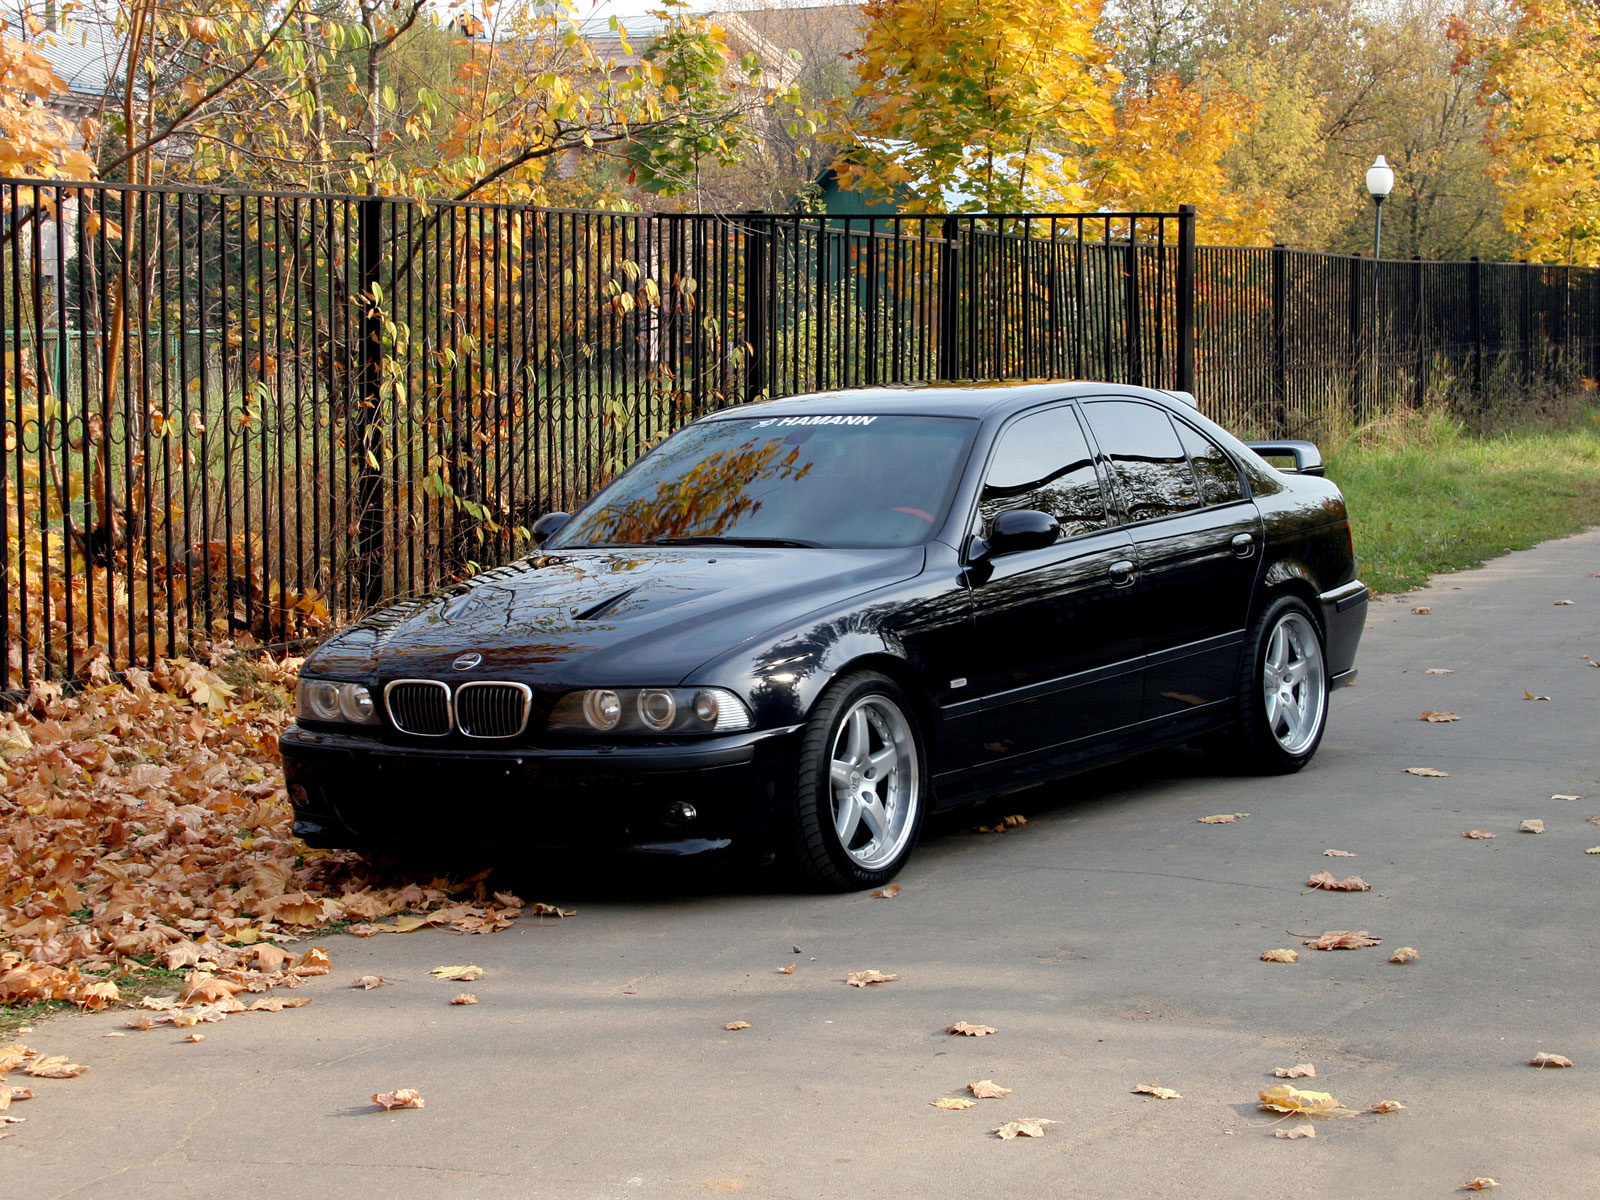 2001 hamann bmw m5 e39 tuning m 5 g wallpaper 1600x1200 164755 wallpaperup. Black Bedroom Furniture Sets. Home Design Ideas